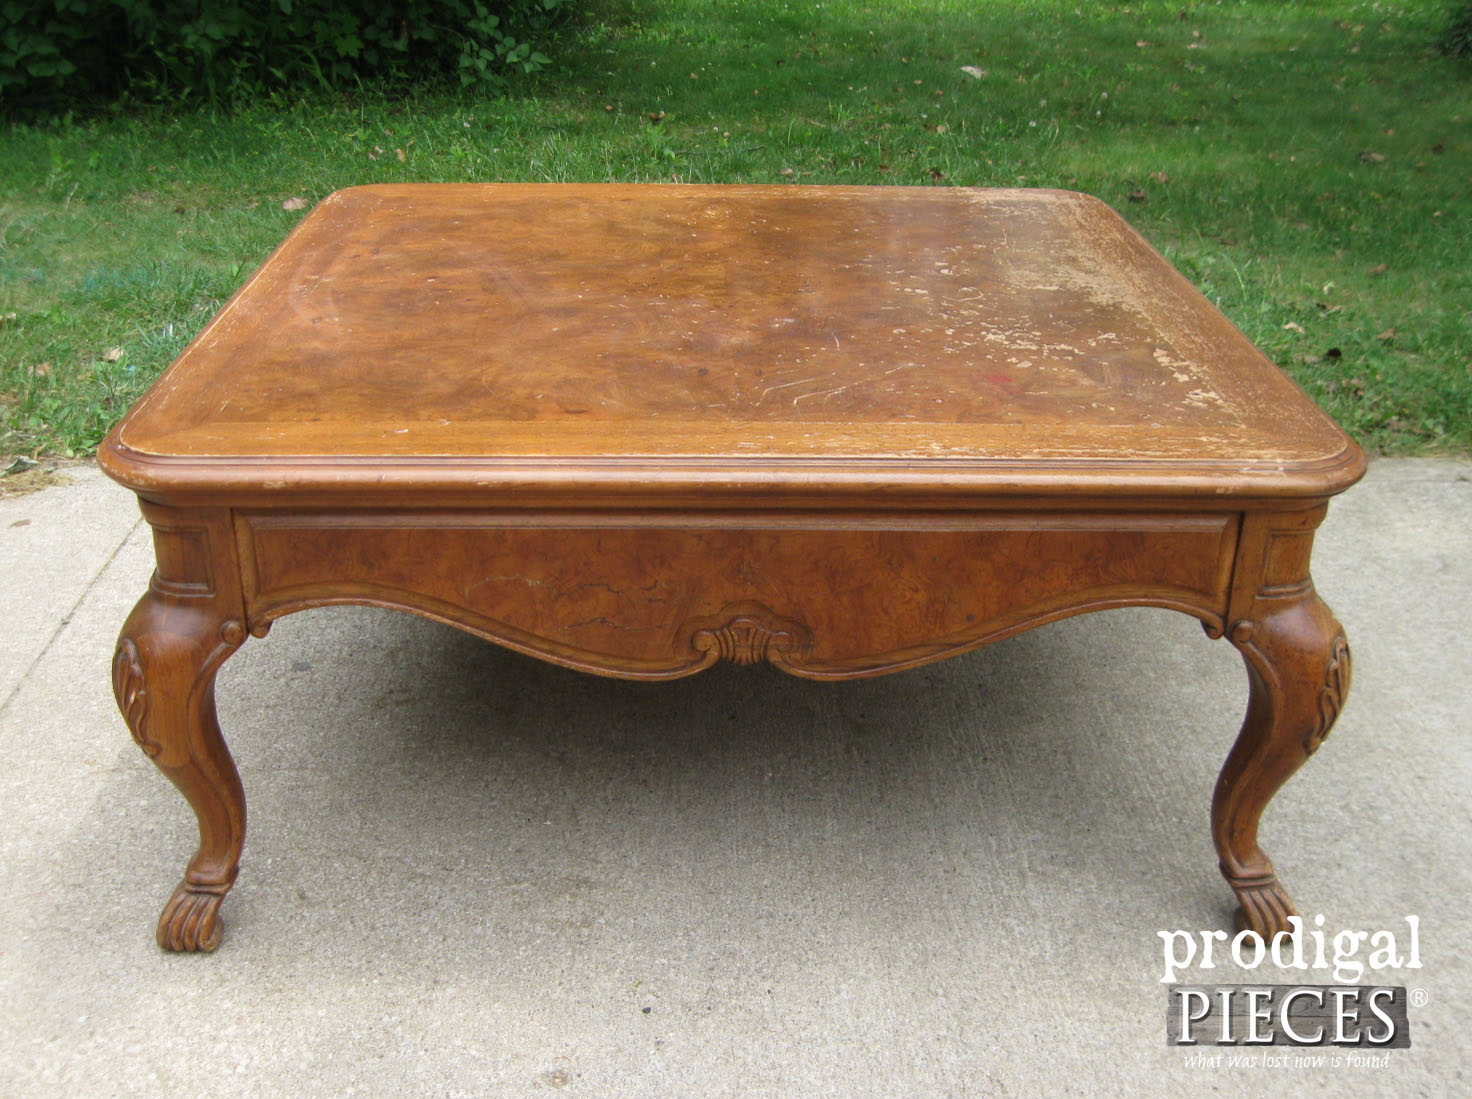 Marvelous Coffee Table Makeover With French Country Style Prodigal Ncnpc Chair Design For Home Ncnpcorg